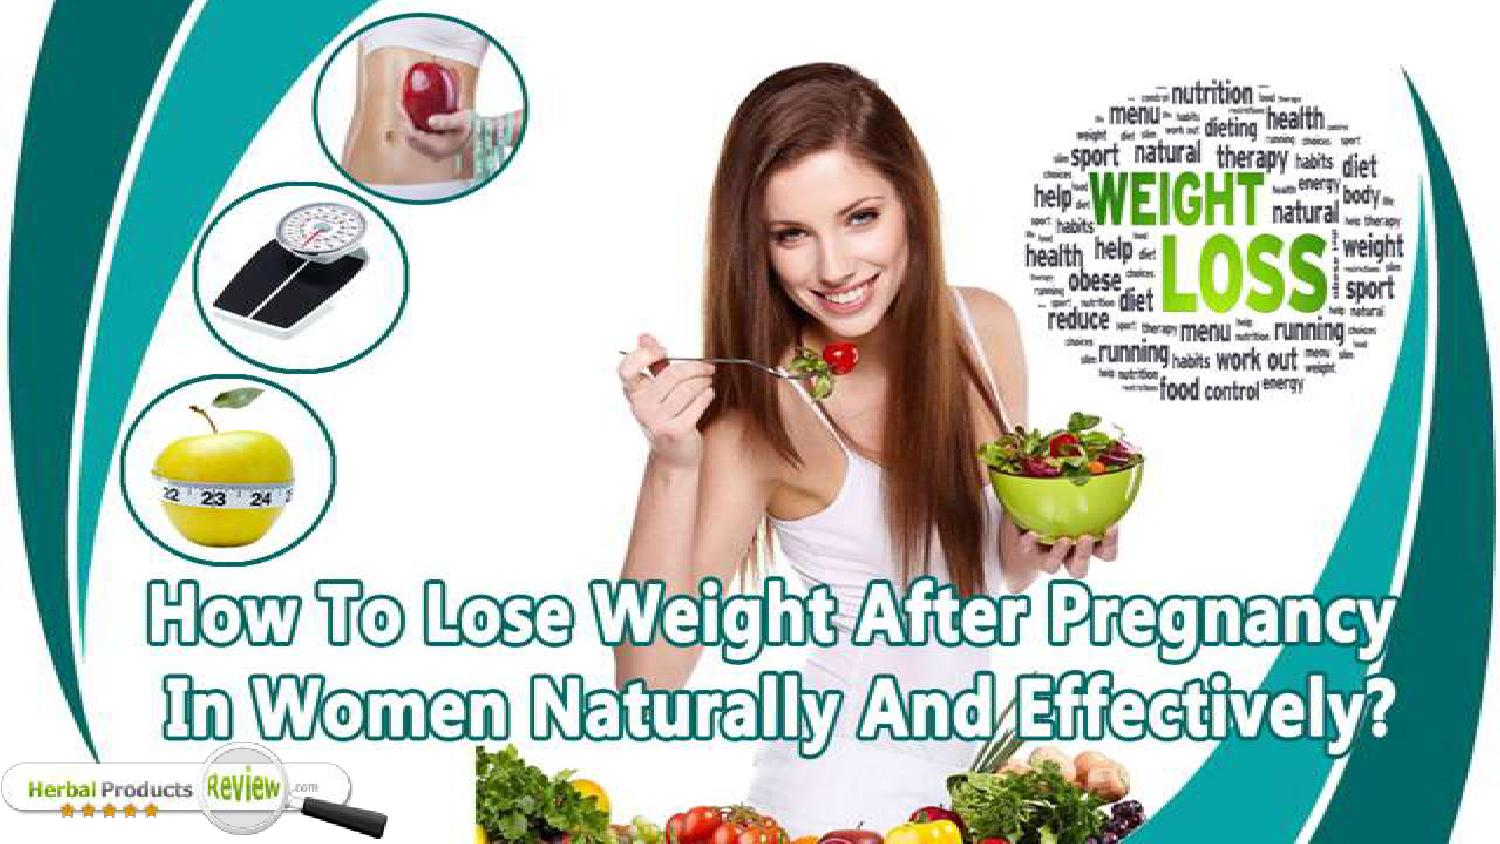 How To Lose Weight After Pregnancy In Women Naturally And